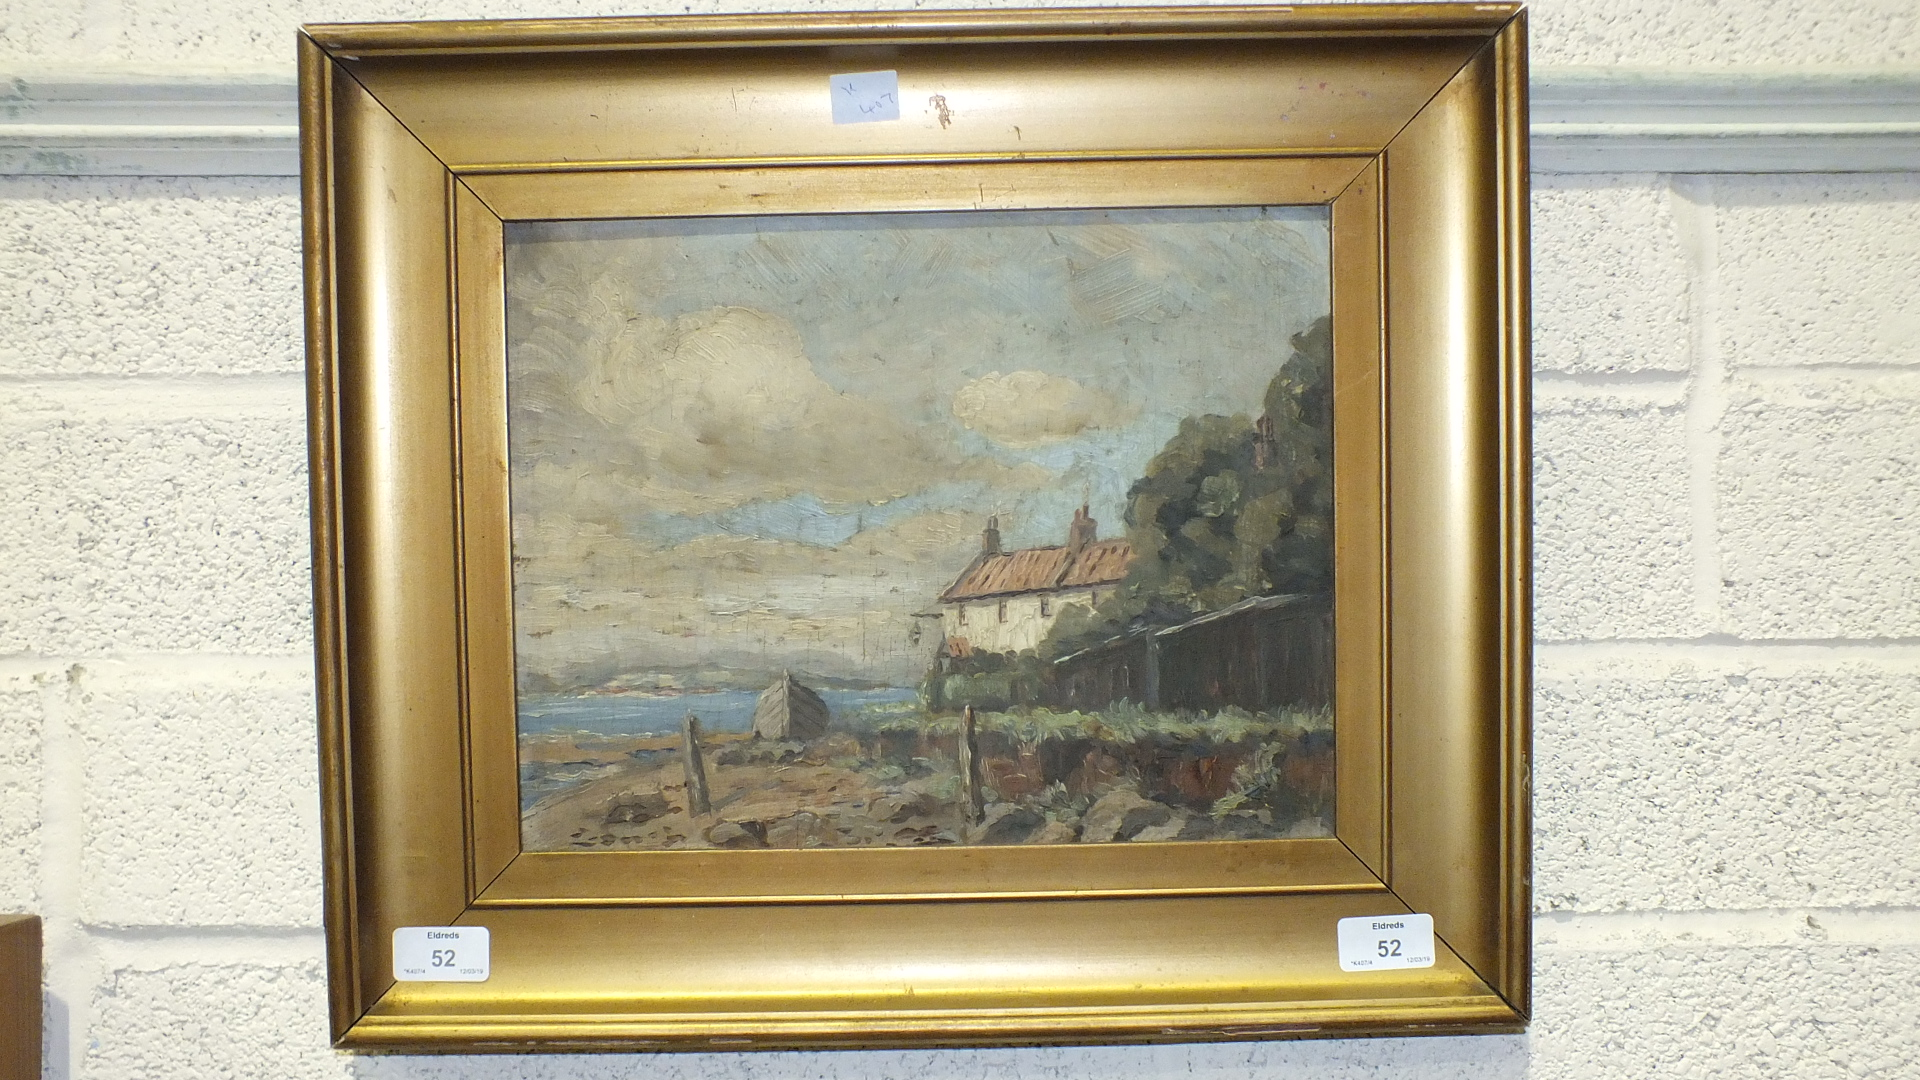 Lot 52 - Unsigned, 'Beached hull beside cottage by the sea', oil on board, 25 x 32cm.